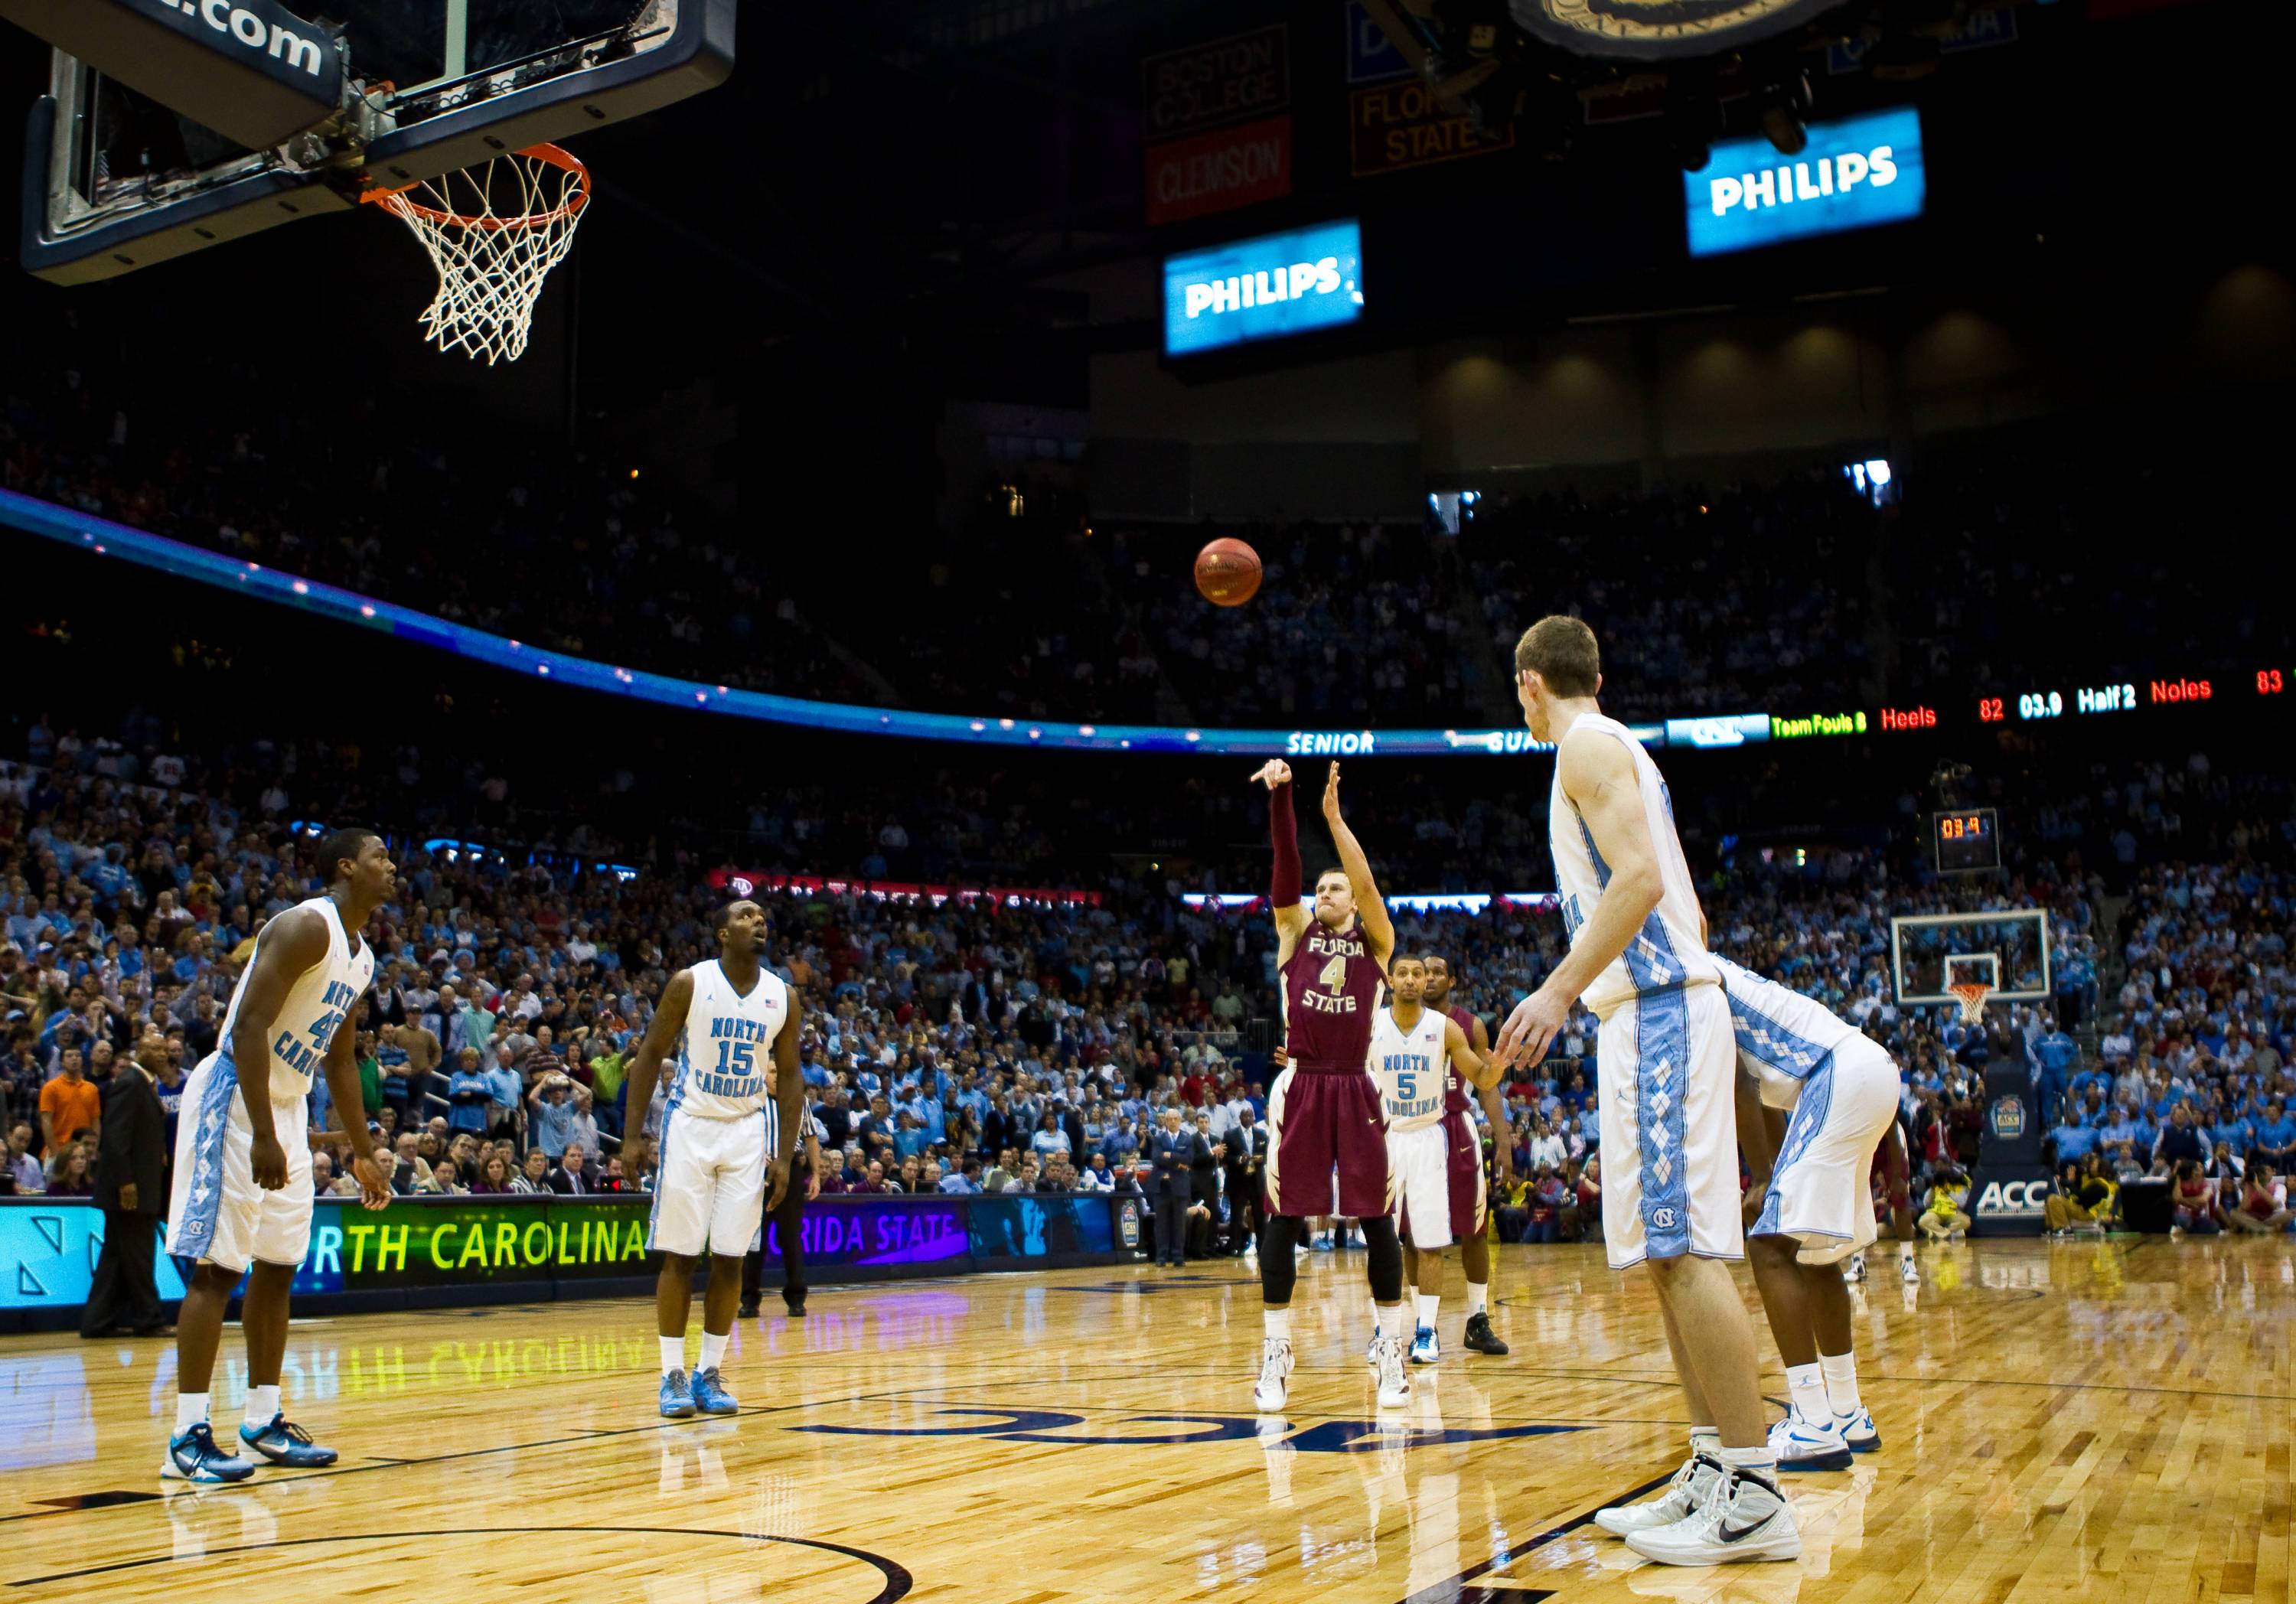 Deividas Dulkys (4) with clutch free throws at the end of the North Carolina game